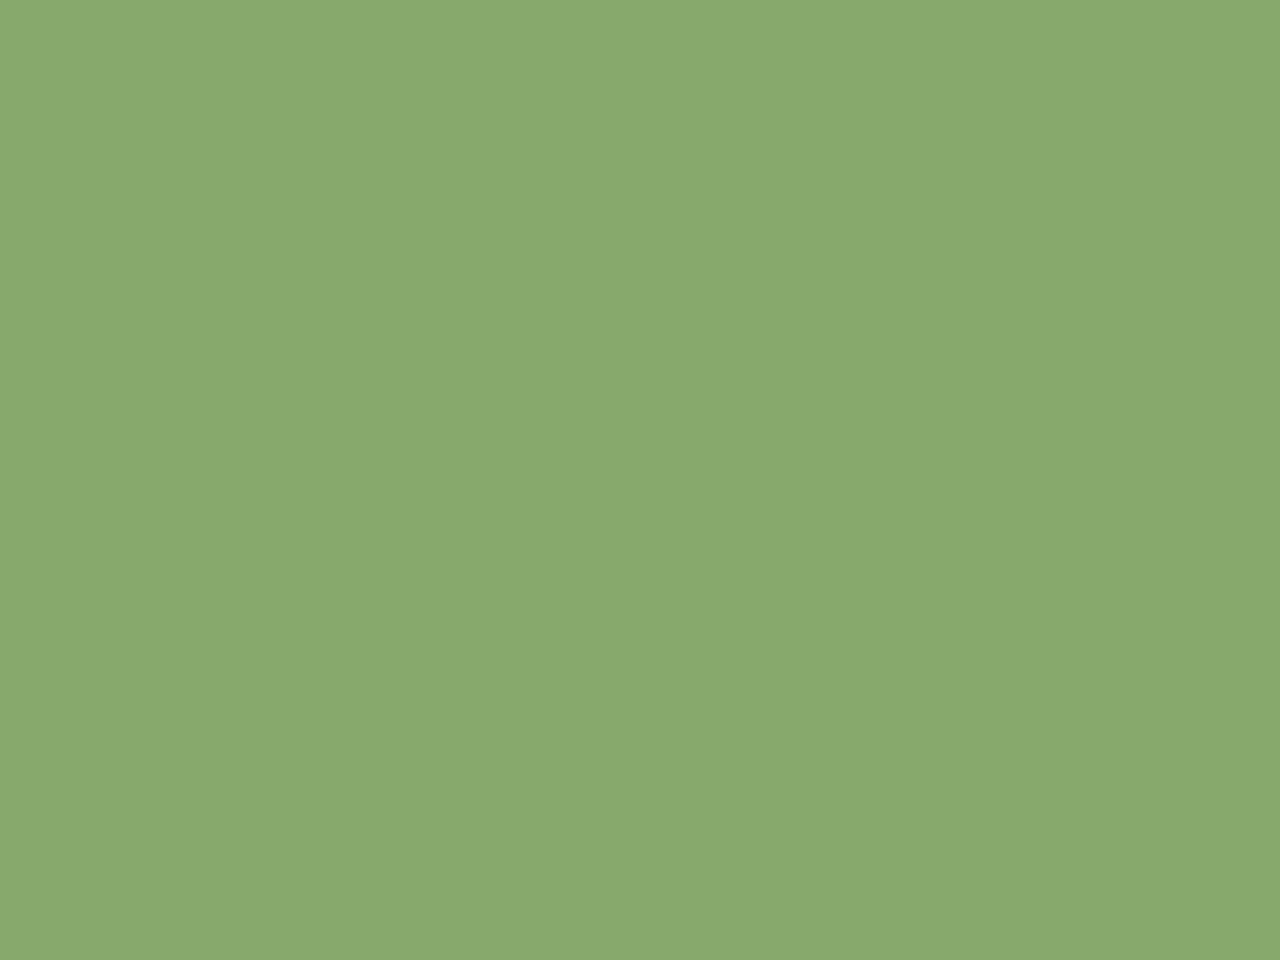 1280x960 Asparagus Solid Color Background